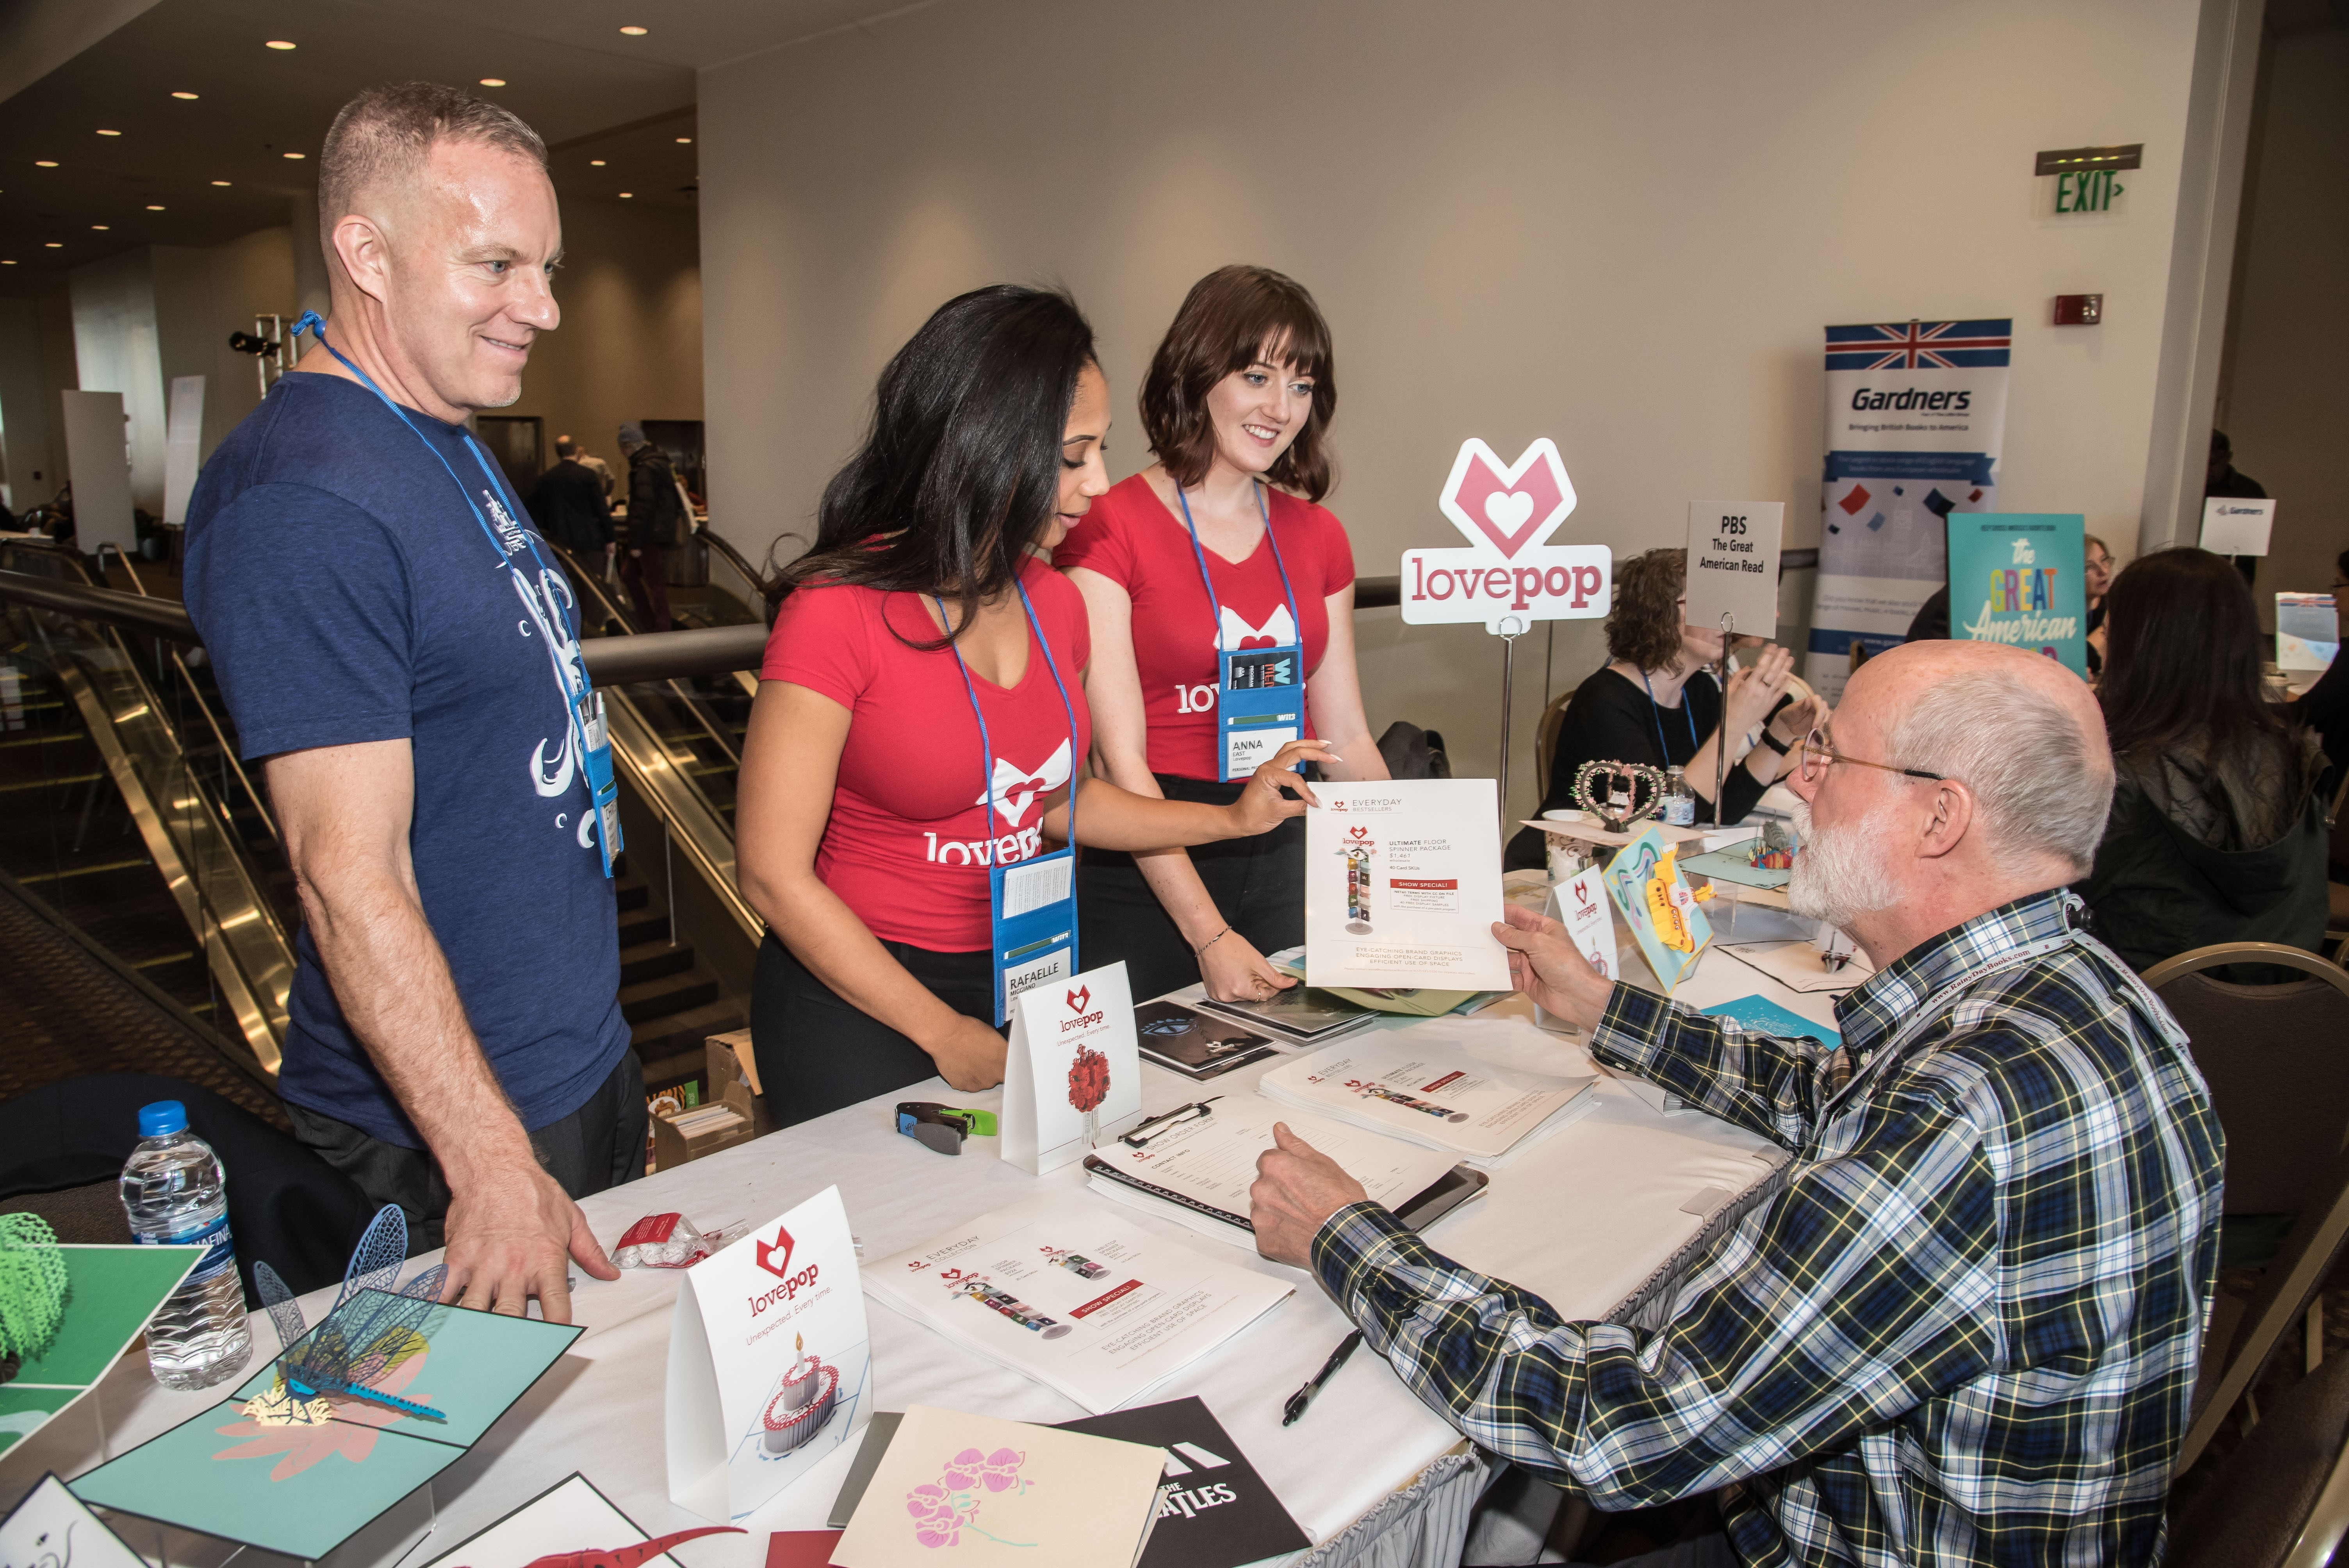 Lovepop educated booksellers about its 3D greeting cards at the Consultation Station.